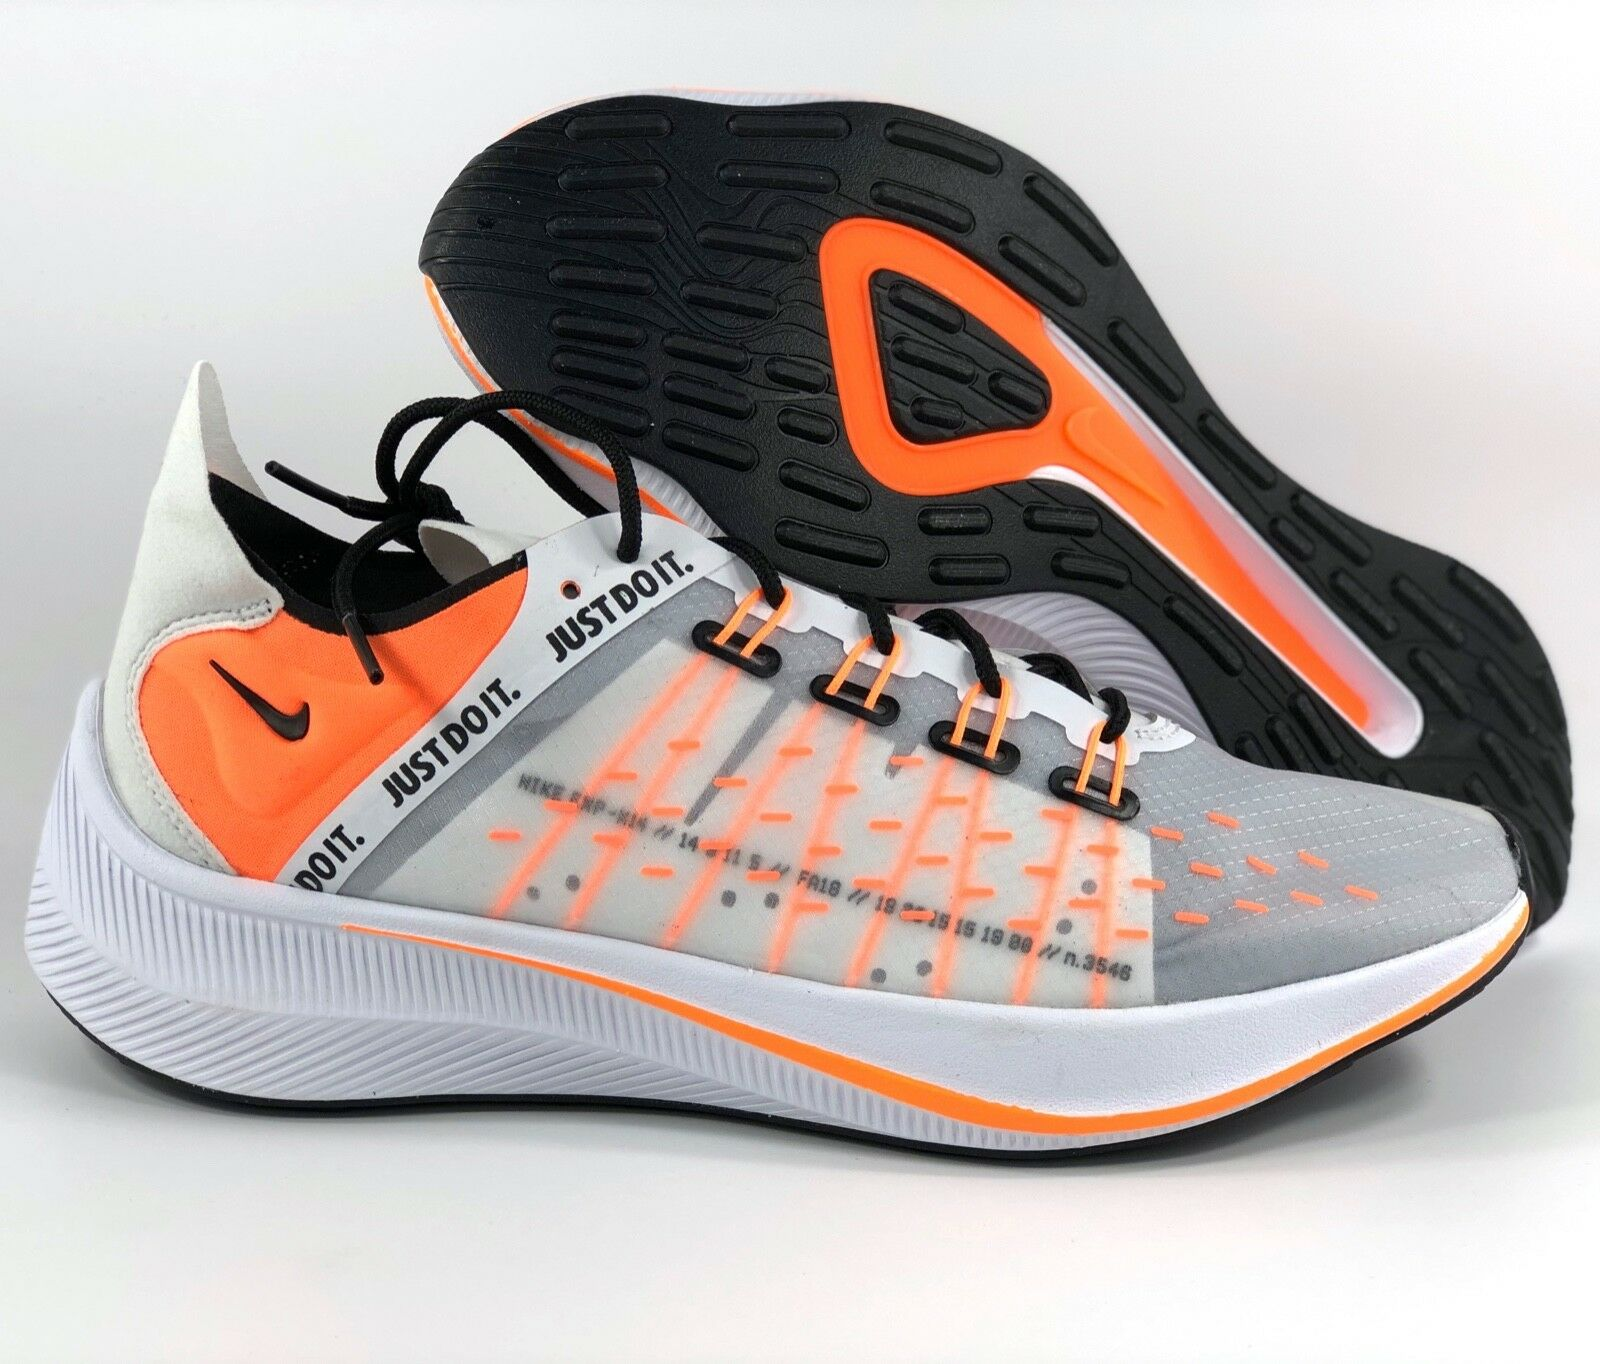 Nike EXP-X14 SE Just Do It White Total orange Black AO3095-100 Men's 8